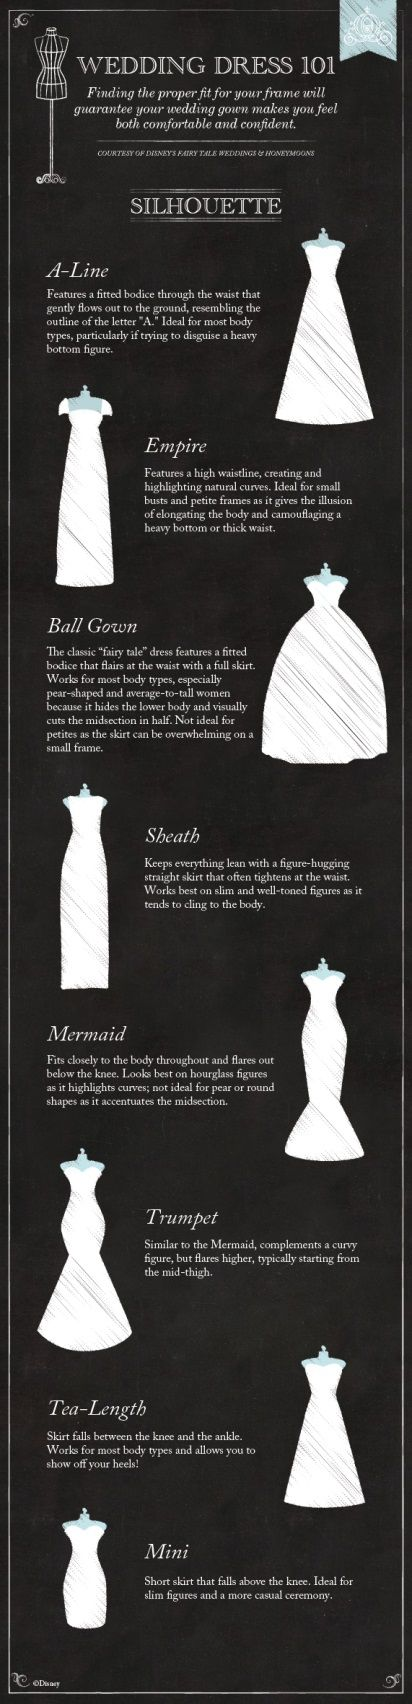 Wedding Dress 101: The Silhouette #Disney #wedding #dress helpful styles of wedding dresses